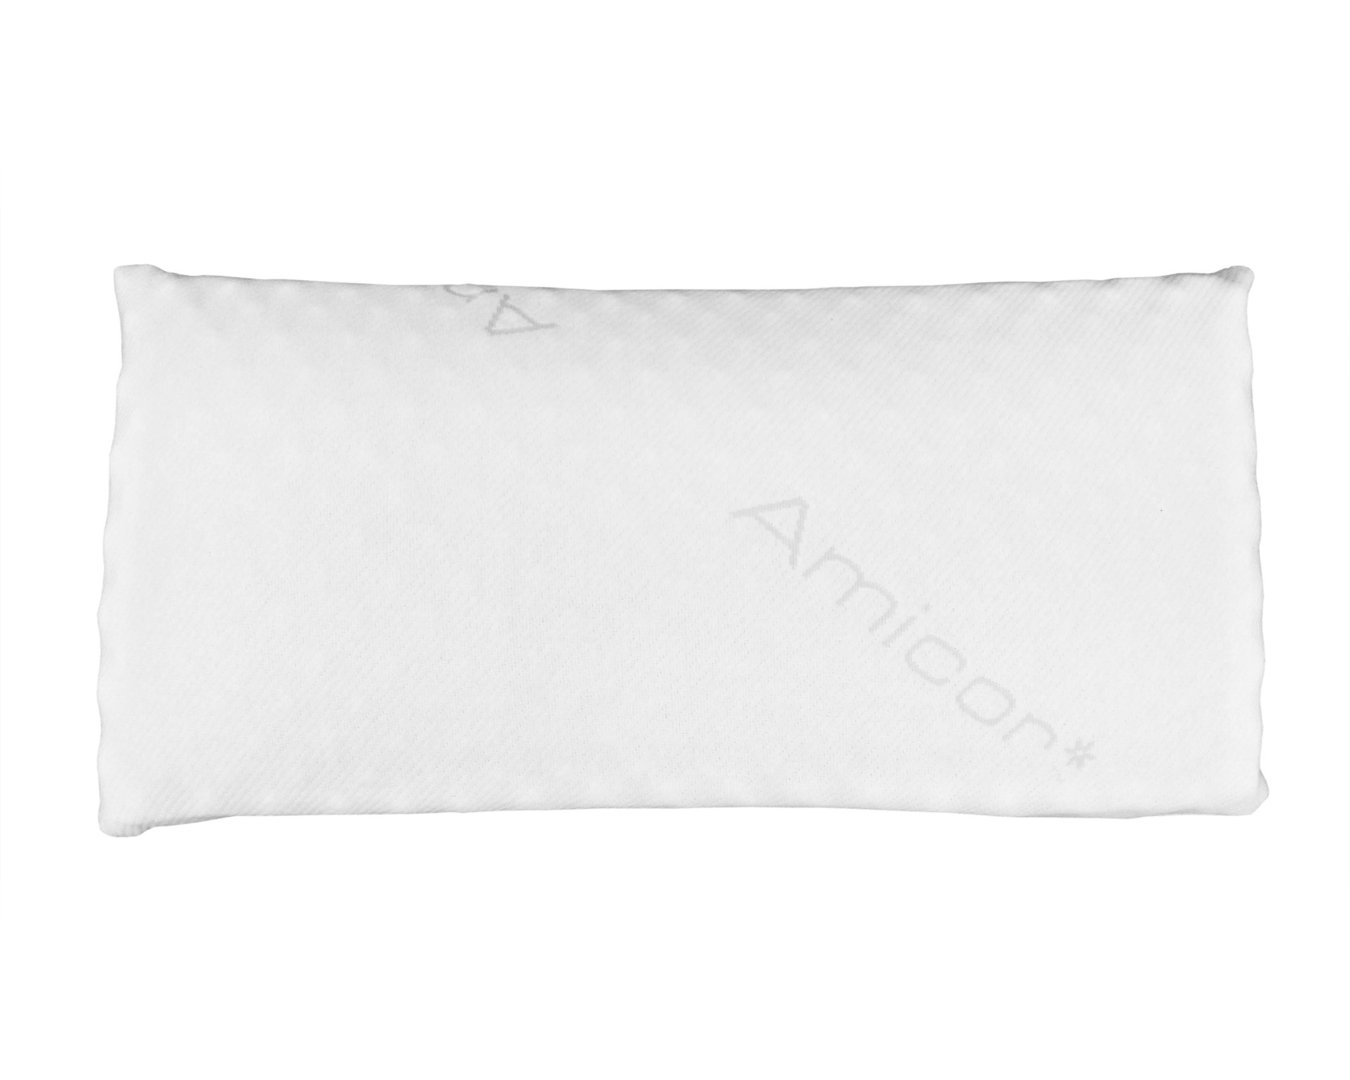 Cover for BionaFlex Comfort Sleeping Pillow for allergy sufferers